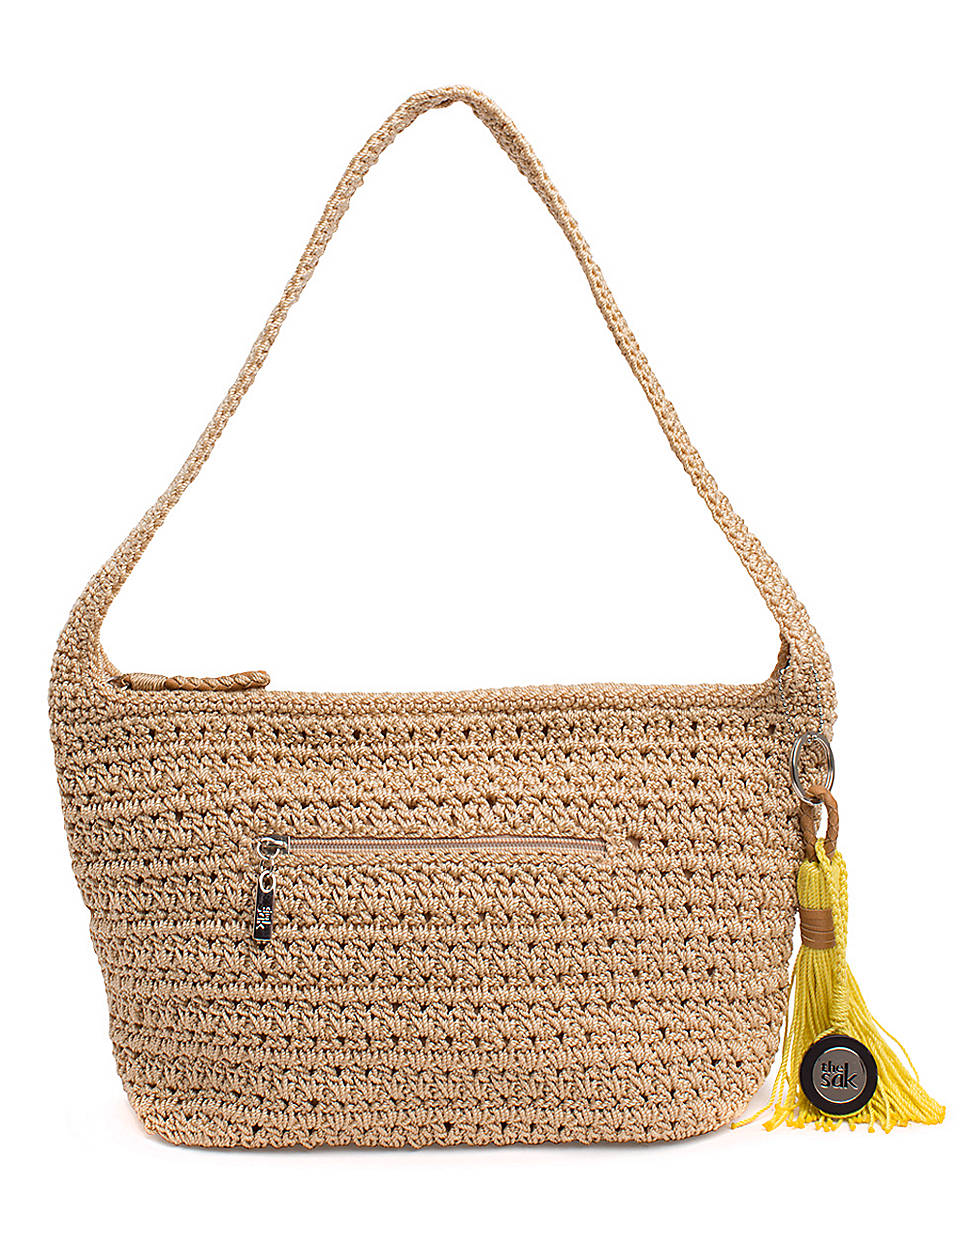 The Sak Casual Classics Crochet Hobo Bag in Beige (bamboo) Lyst